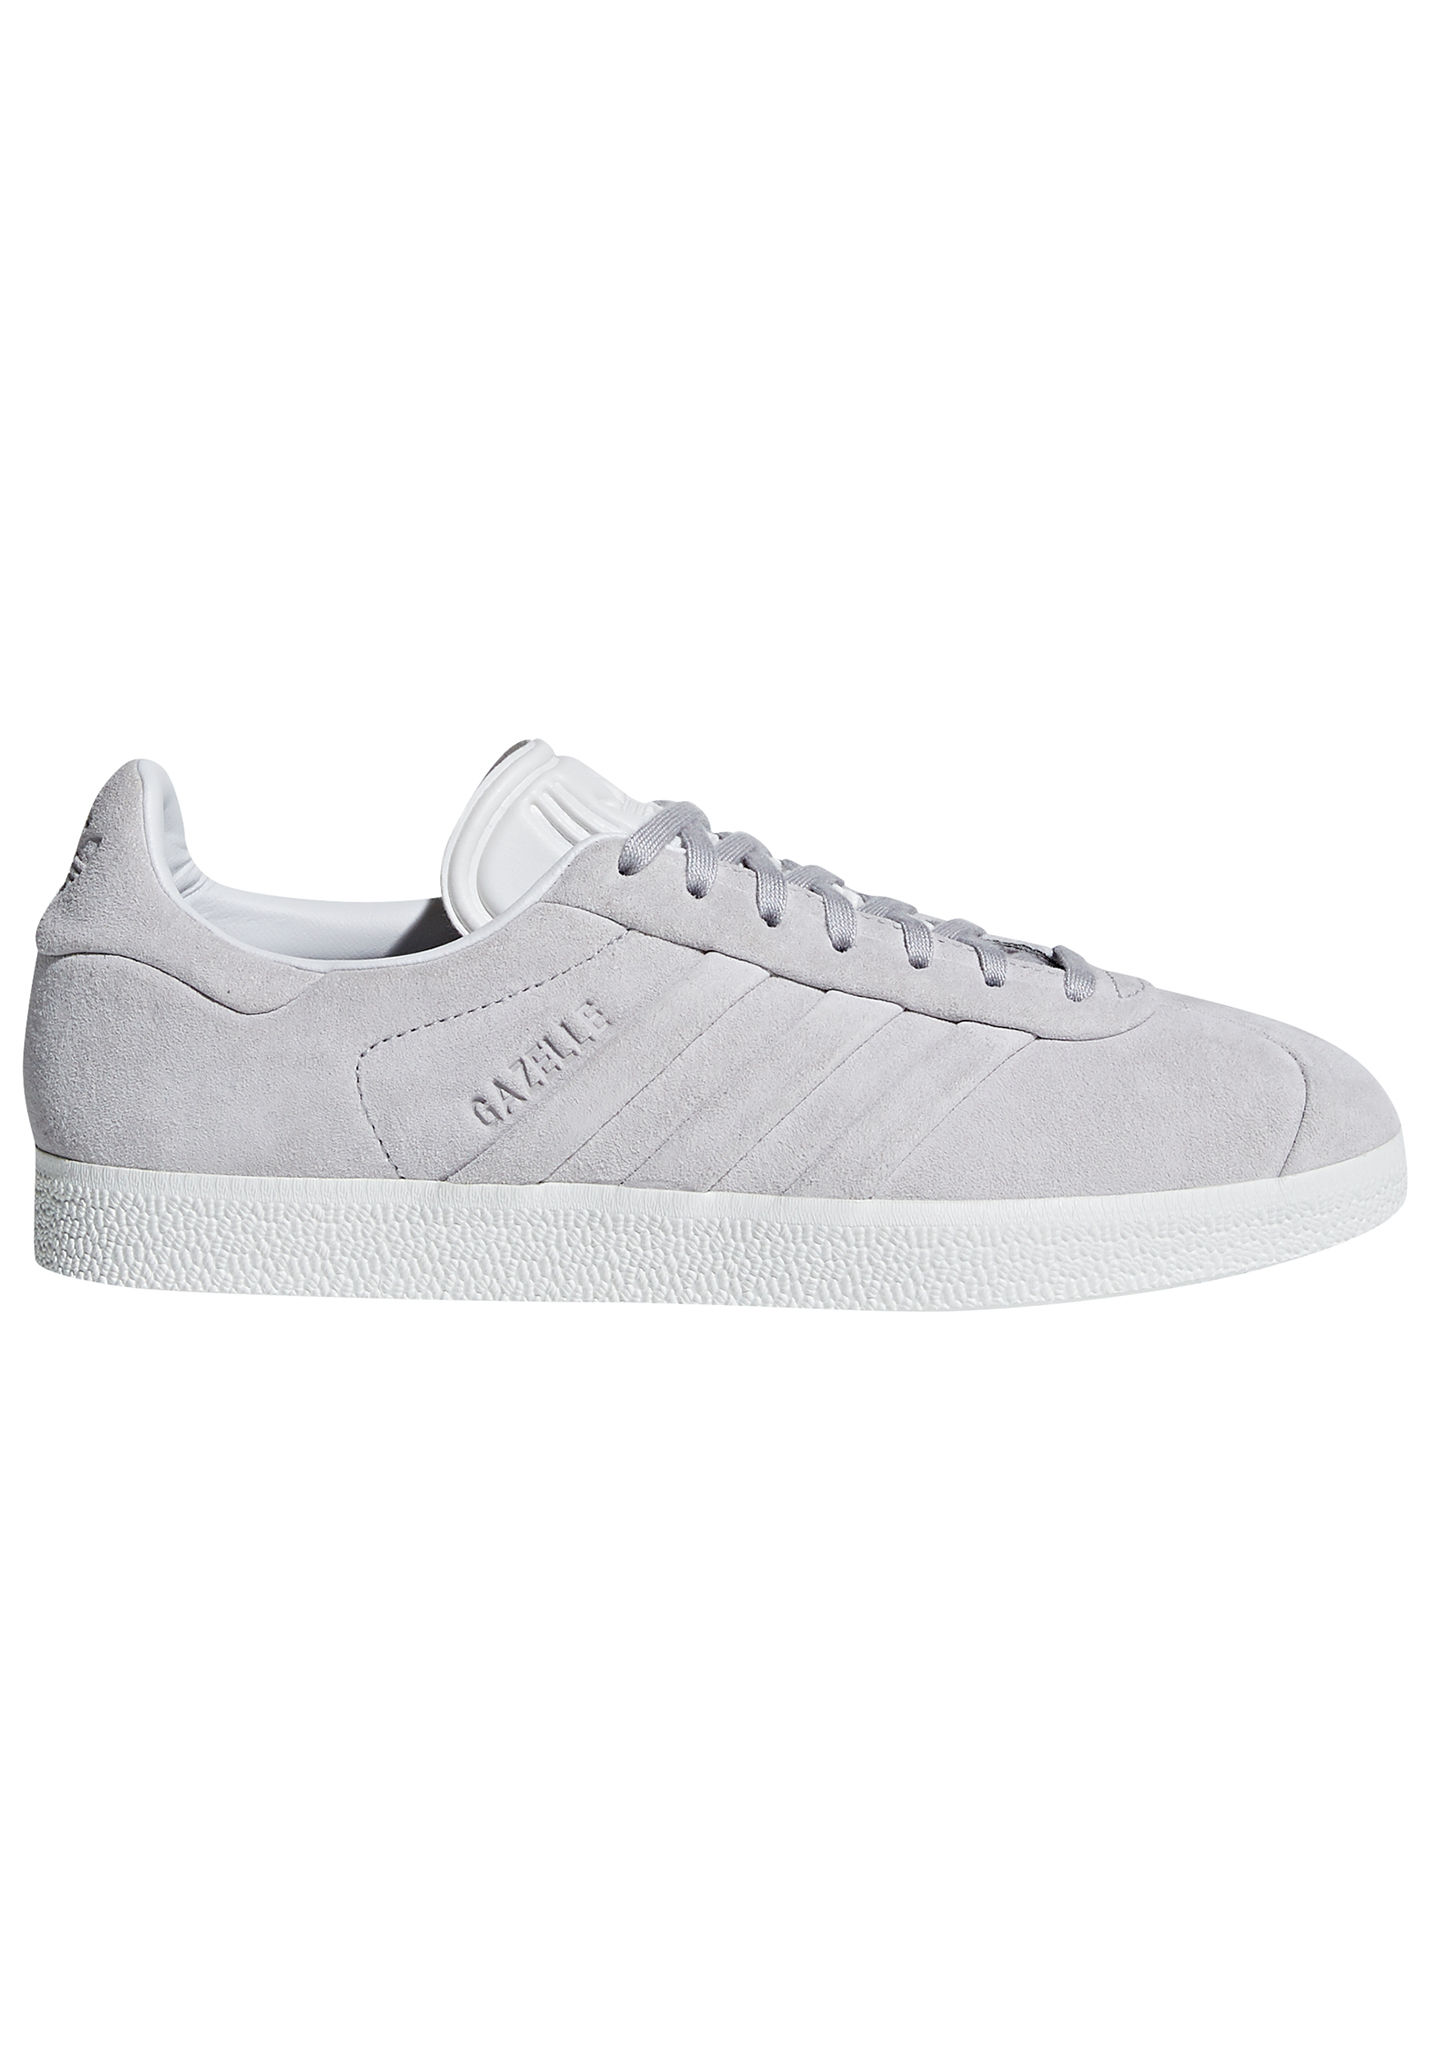 adidas Gazelle Stitch And Turn Sneaker für Herren Grün